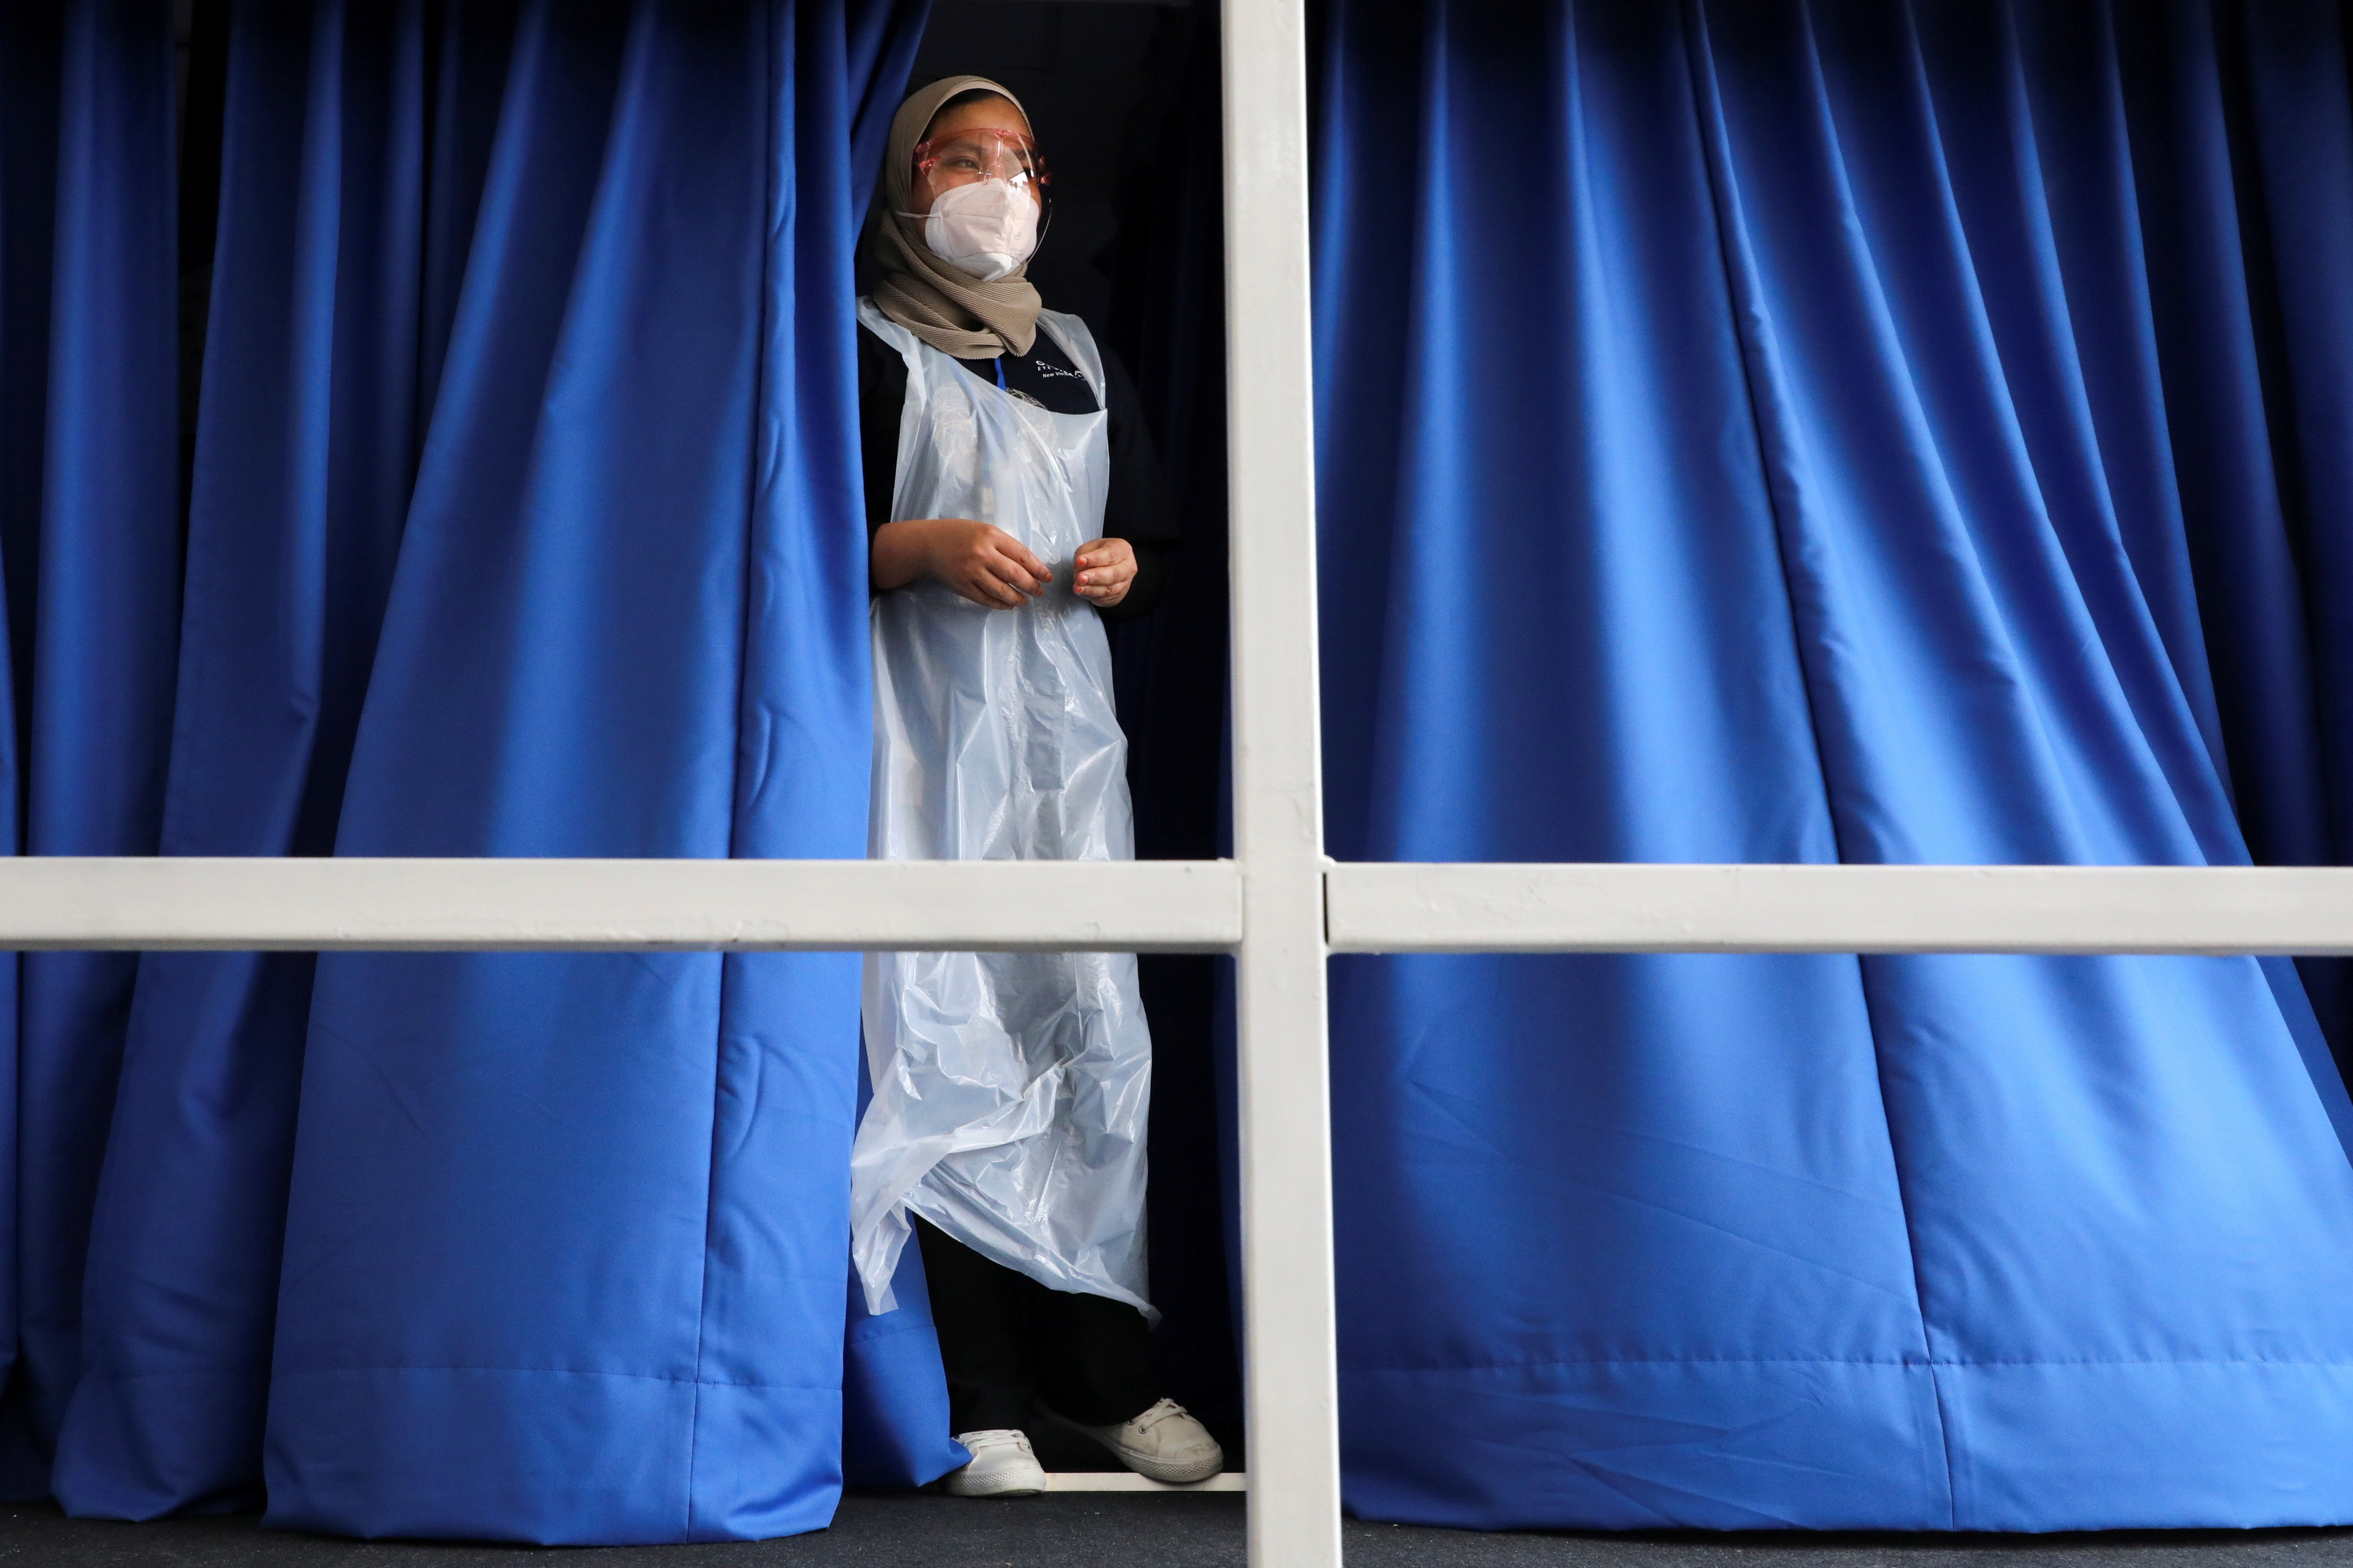 A medical worker looks out from a coronavirus disease (COVID-19) vaccination truck in Kuala Lumpur, Malaysia June 8, 2021.